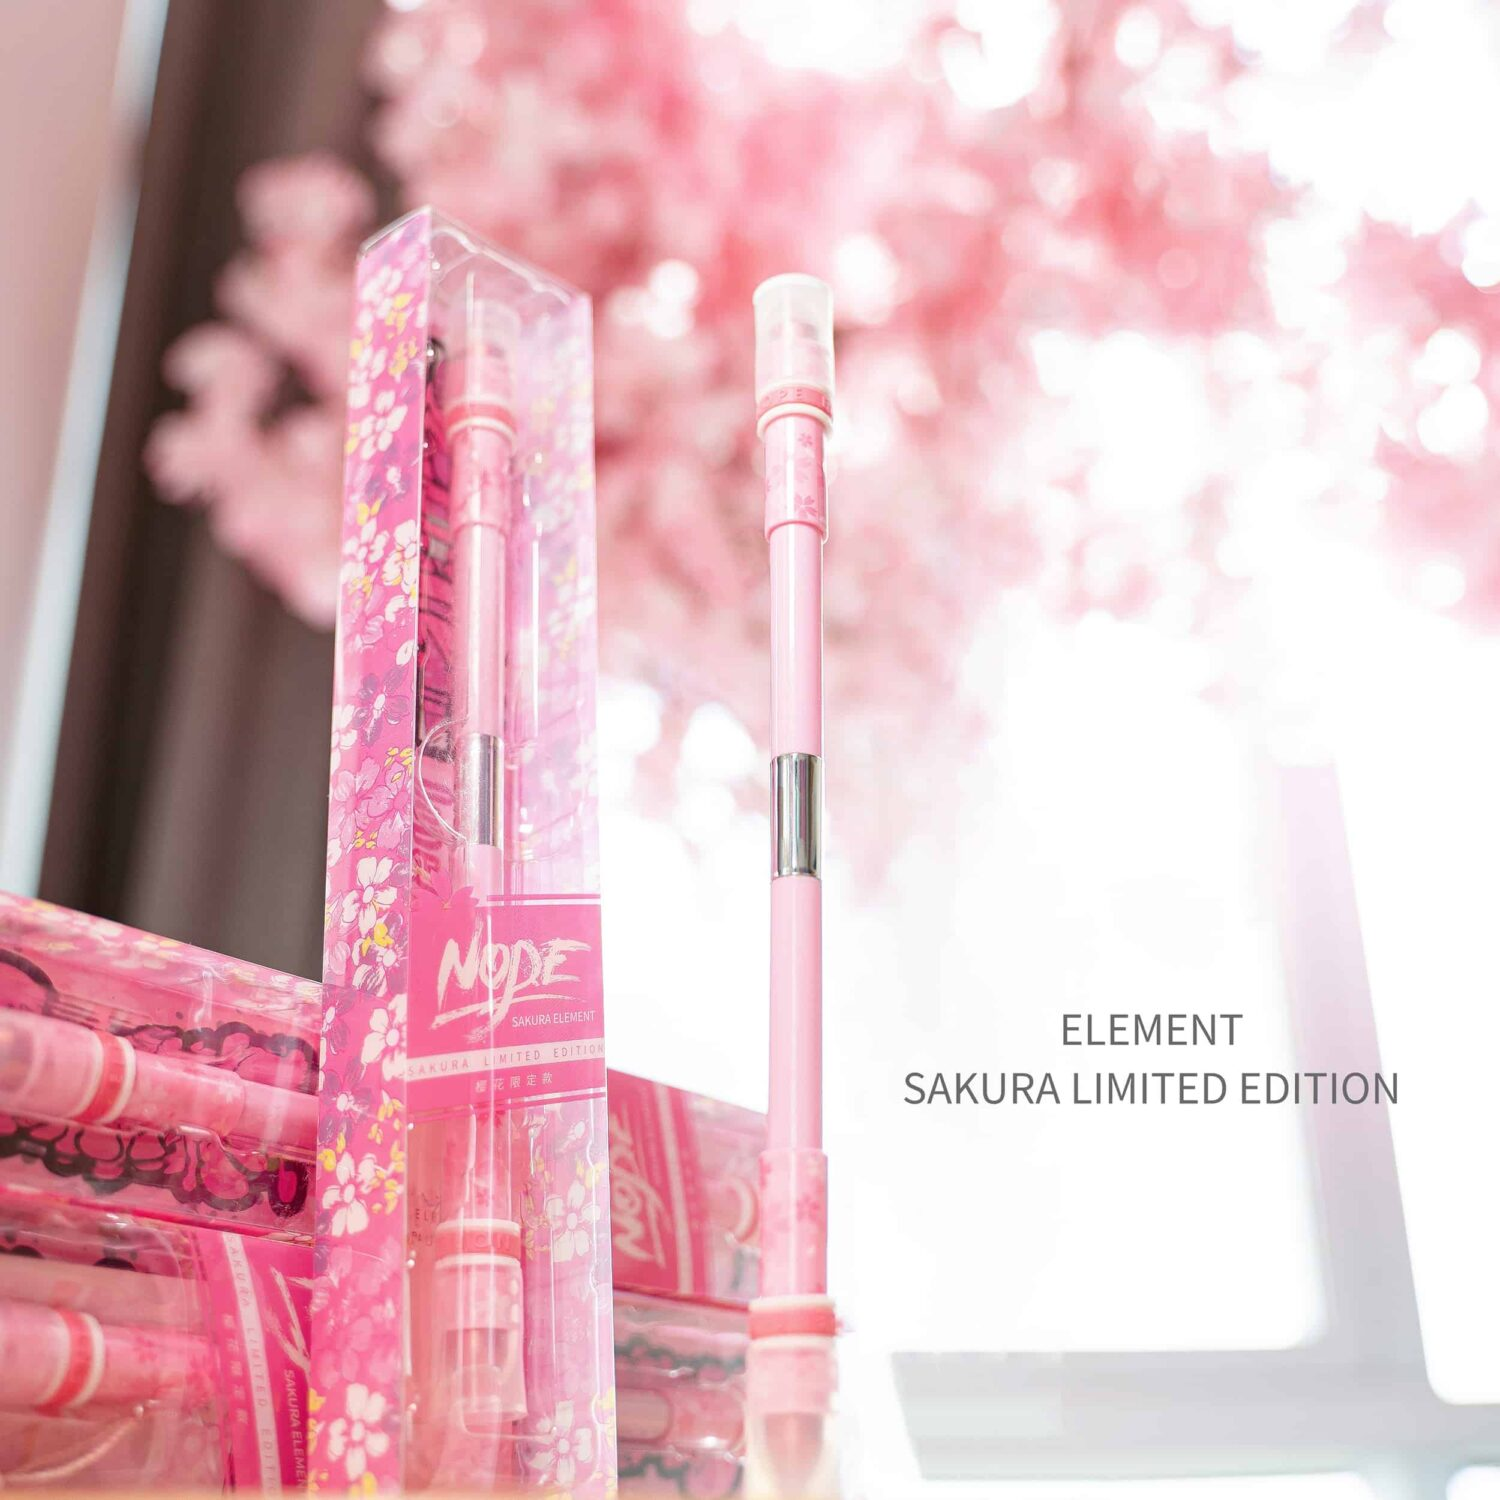 [Mr. Nope] Element Sakura Limited Edition